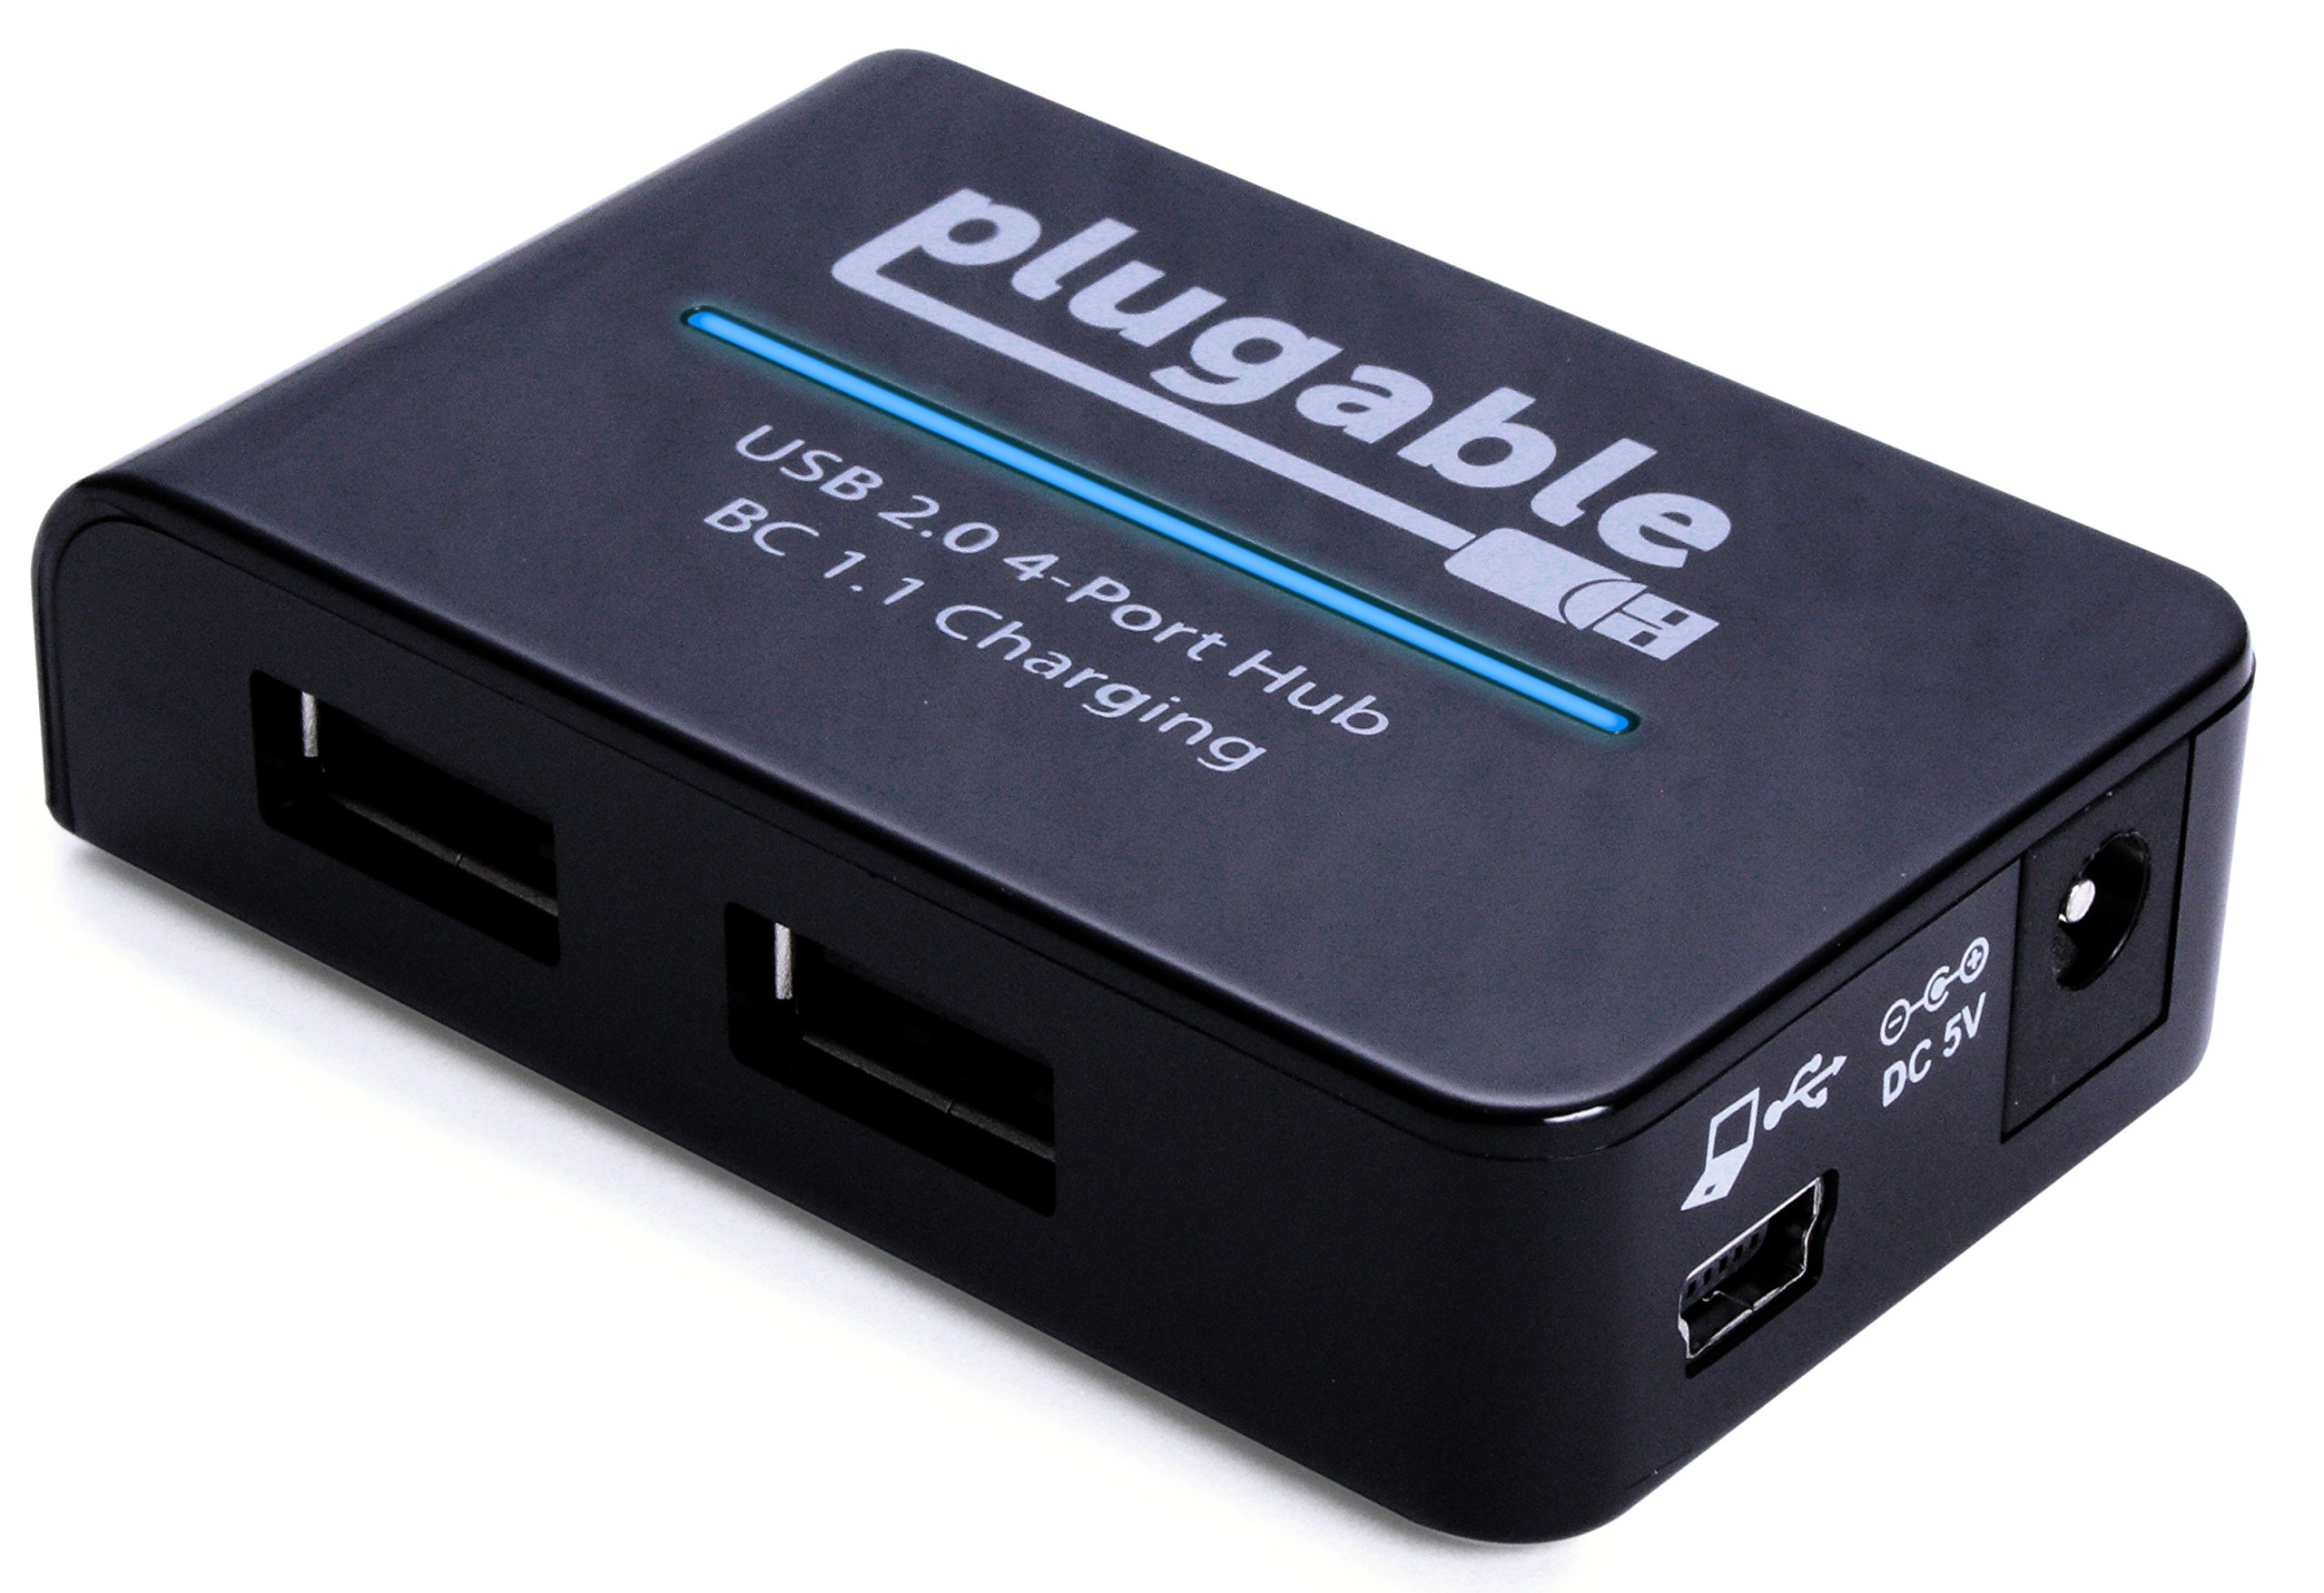 Plugable USB 2.0 4-Port High Speed Charging Hub with 12.5W Power Adapter